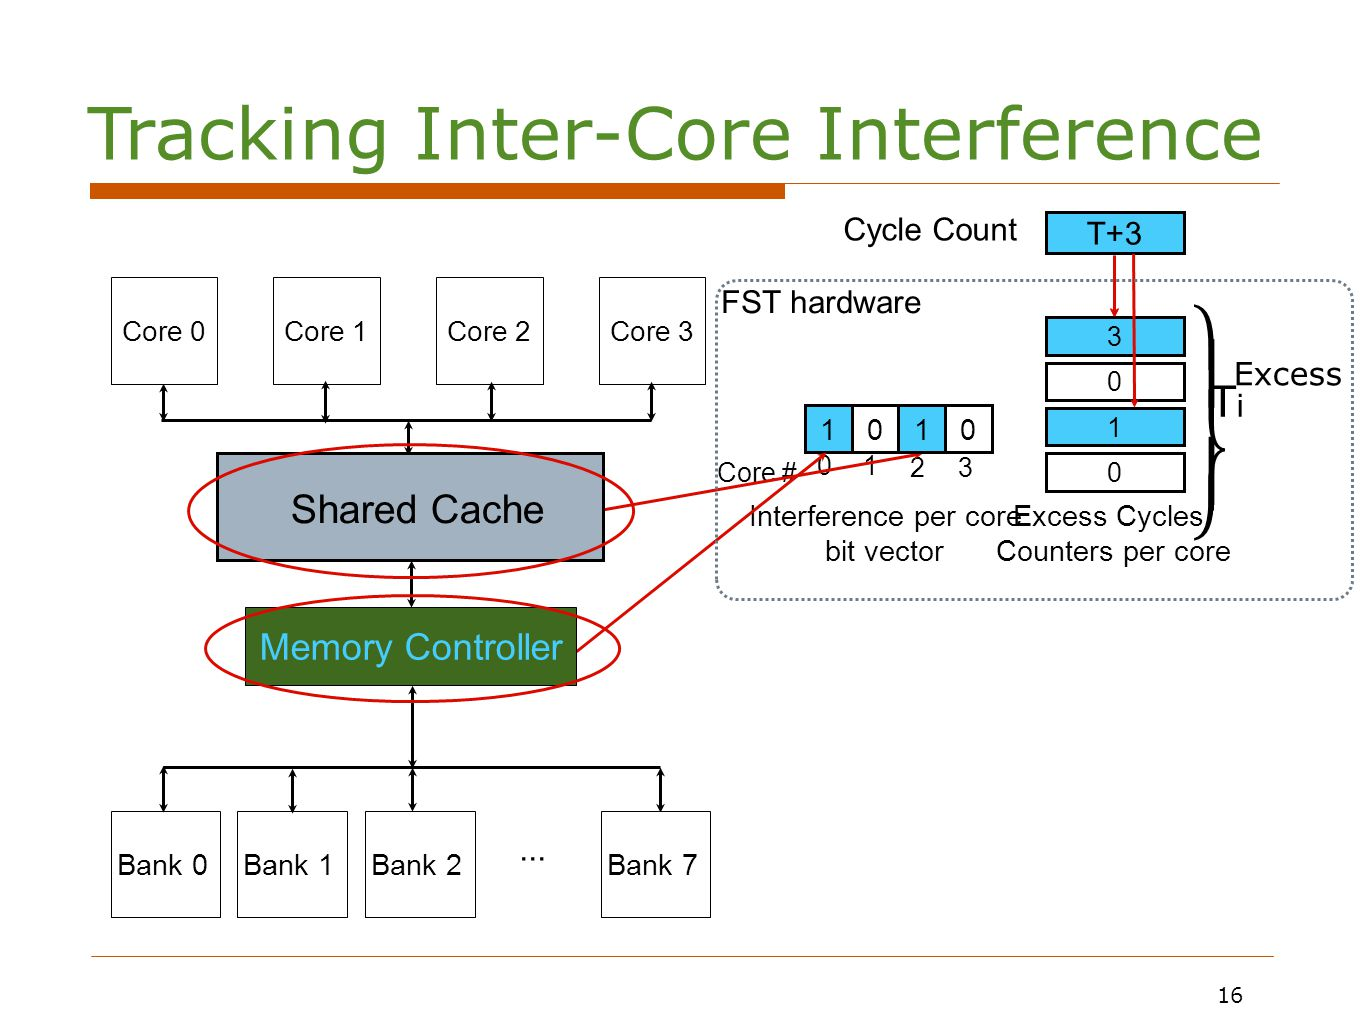 16 0000 Interference per core bit vector Core # 01 23 0 0 0 0 0 0 0 0 Excess Cycles Counters per core 1 T T Cycle Count T+1 1 1 T+2 2 2 FST hardware 1 T+3 3 3 1 1 Core 0Core 1Core 2Core 3 Bank 0Bank 1Bank 2Bank 7...